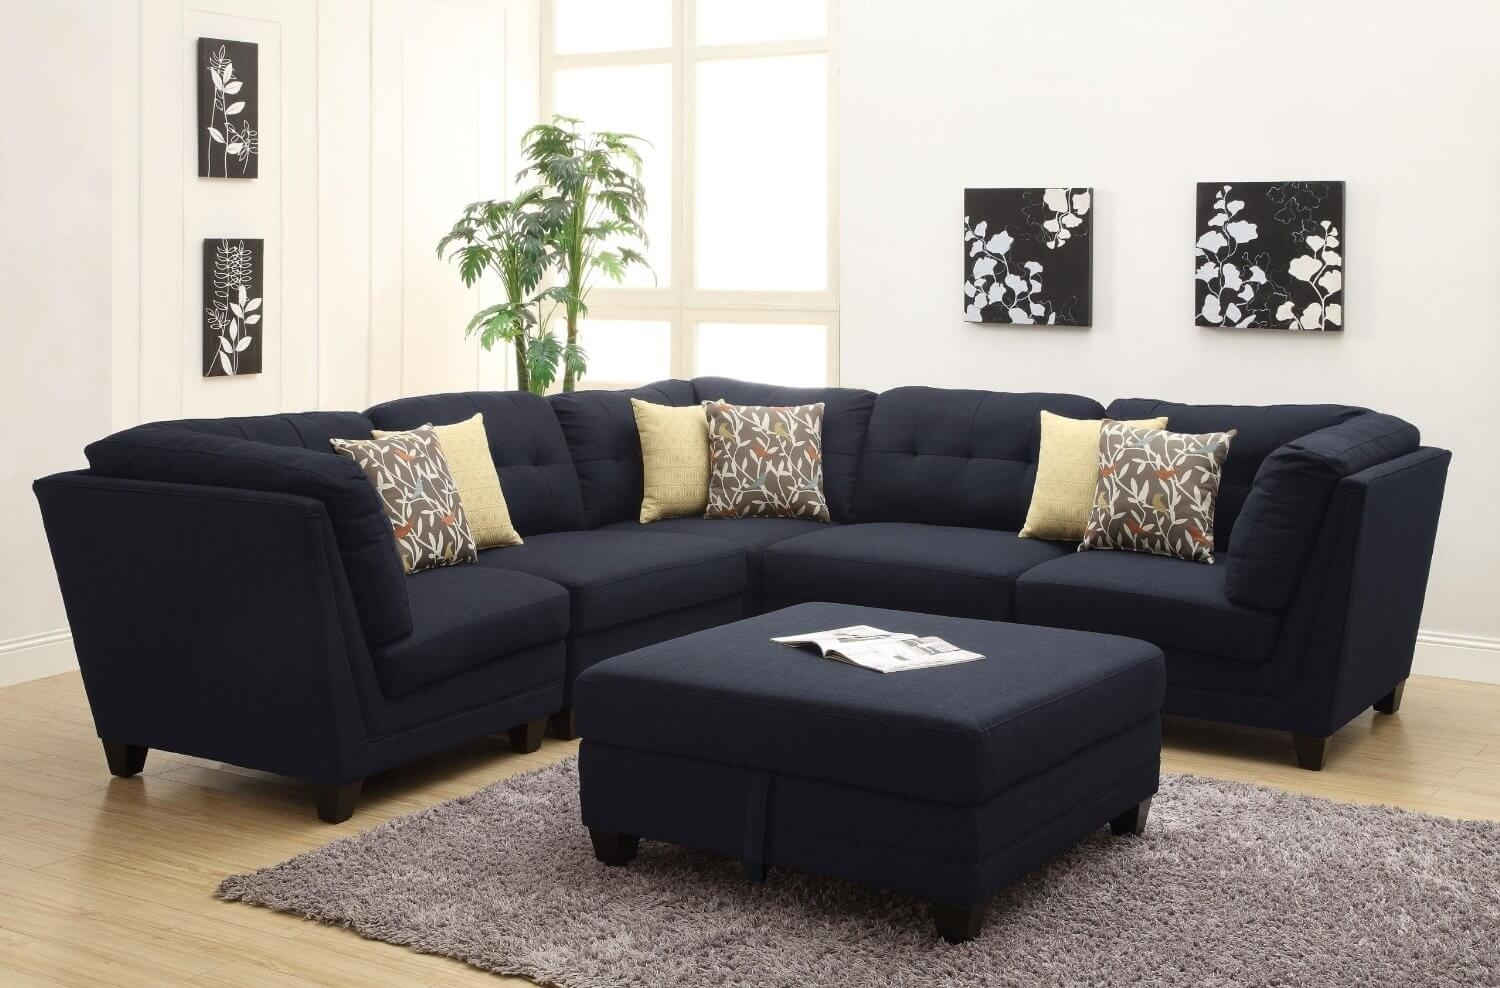 Contemporary Black Leather Sectional Sofa Left Side Chaise Intended For Eco Friendly Sectional Sofas (View 7 of 10)